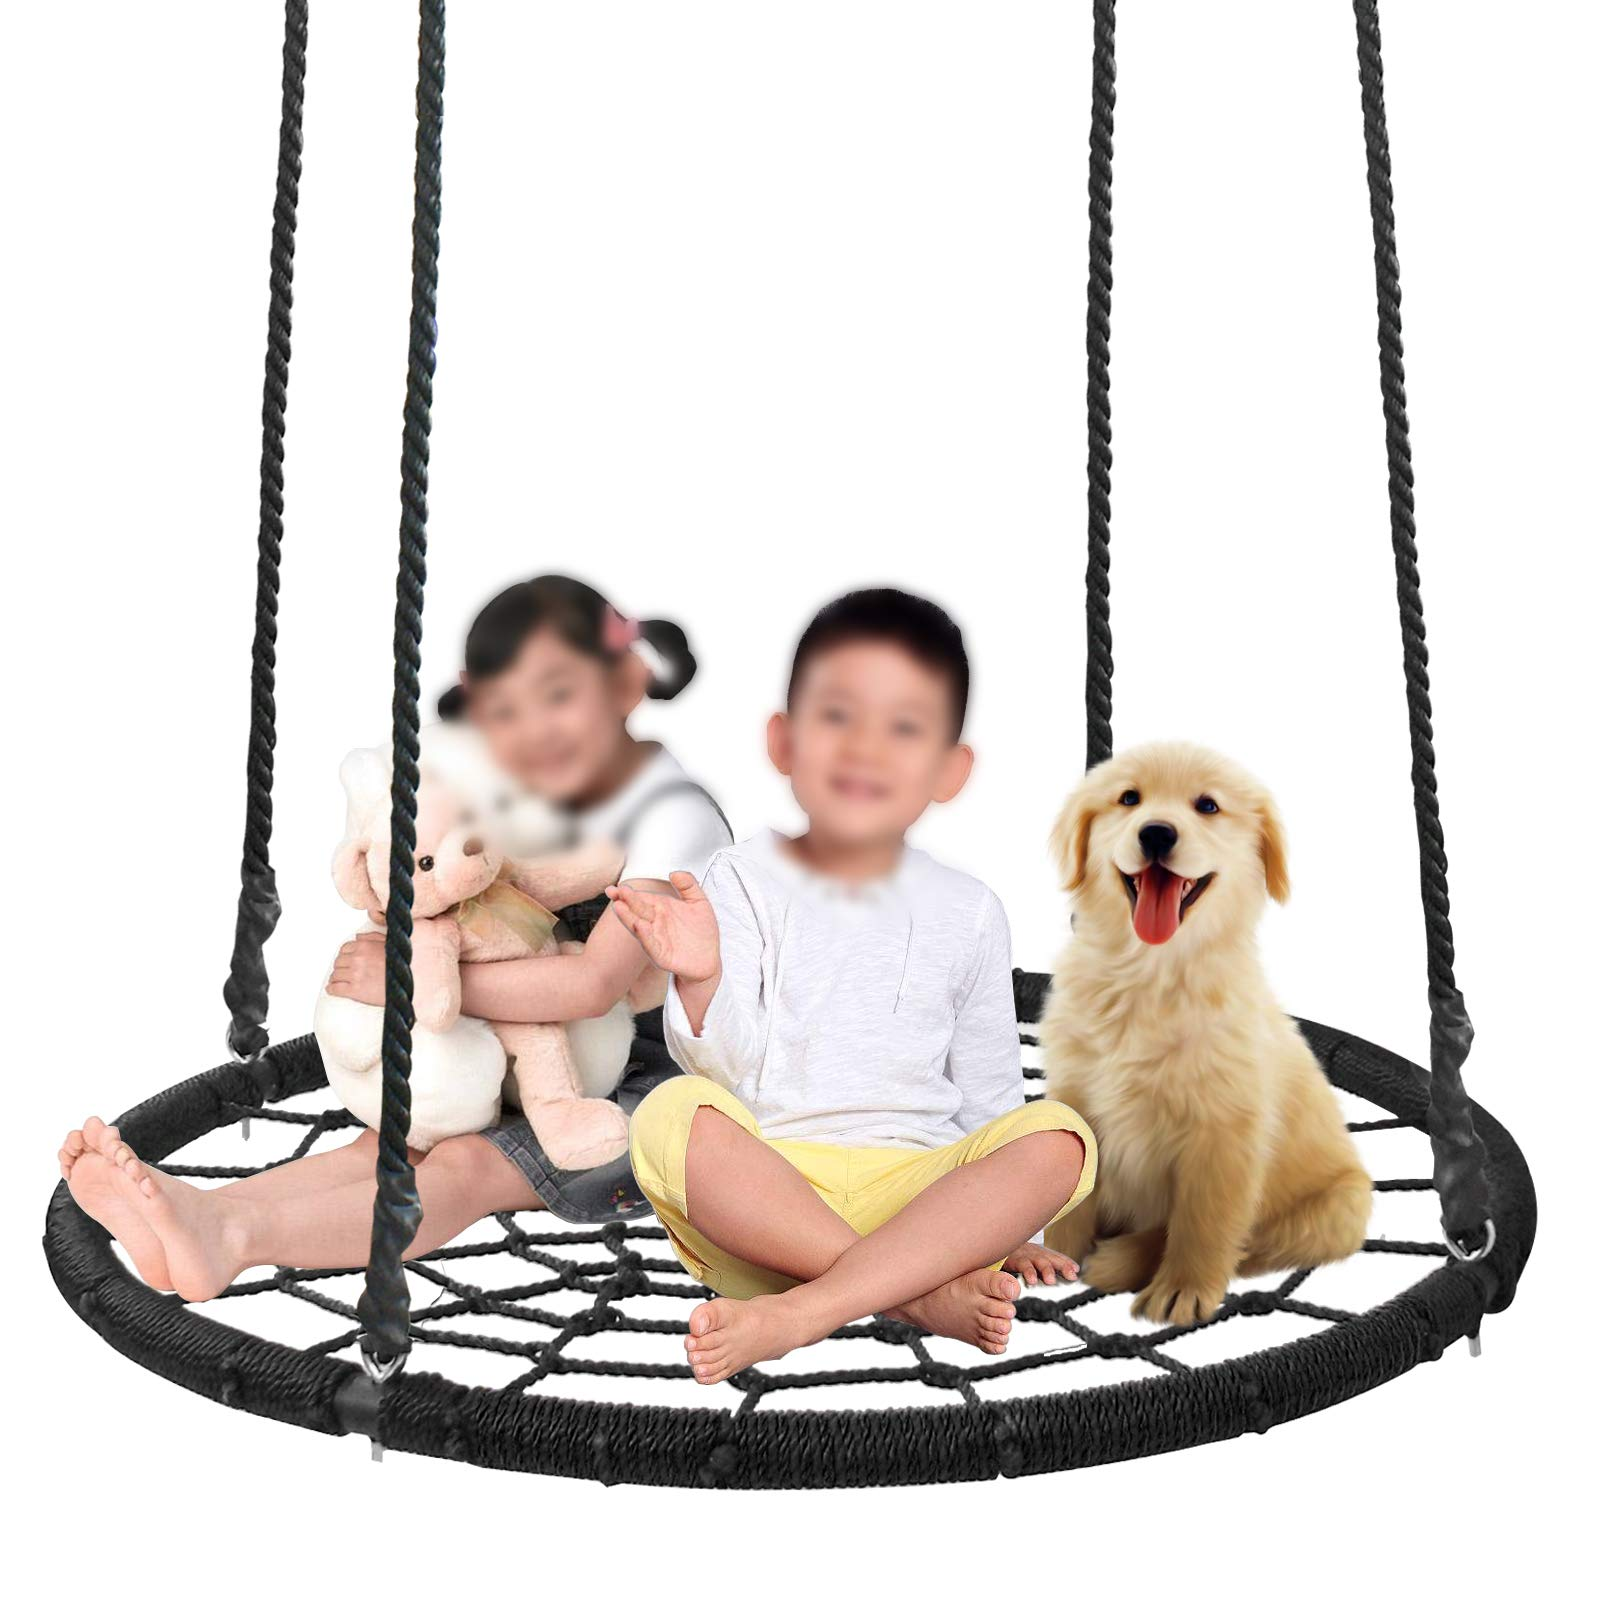 SUPER DEAL Largest 48'' Web Tree Swing Set - Extra Large Platform - 360 Rotate°- Adjustable Hanging Ropes - Attaches to Trees or Existing Swing Sets - for Multiple Kids or Adult by SUPER DEAL